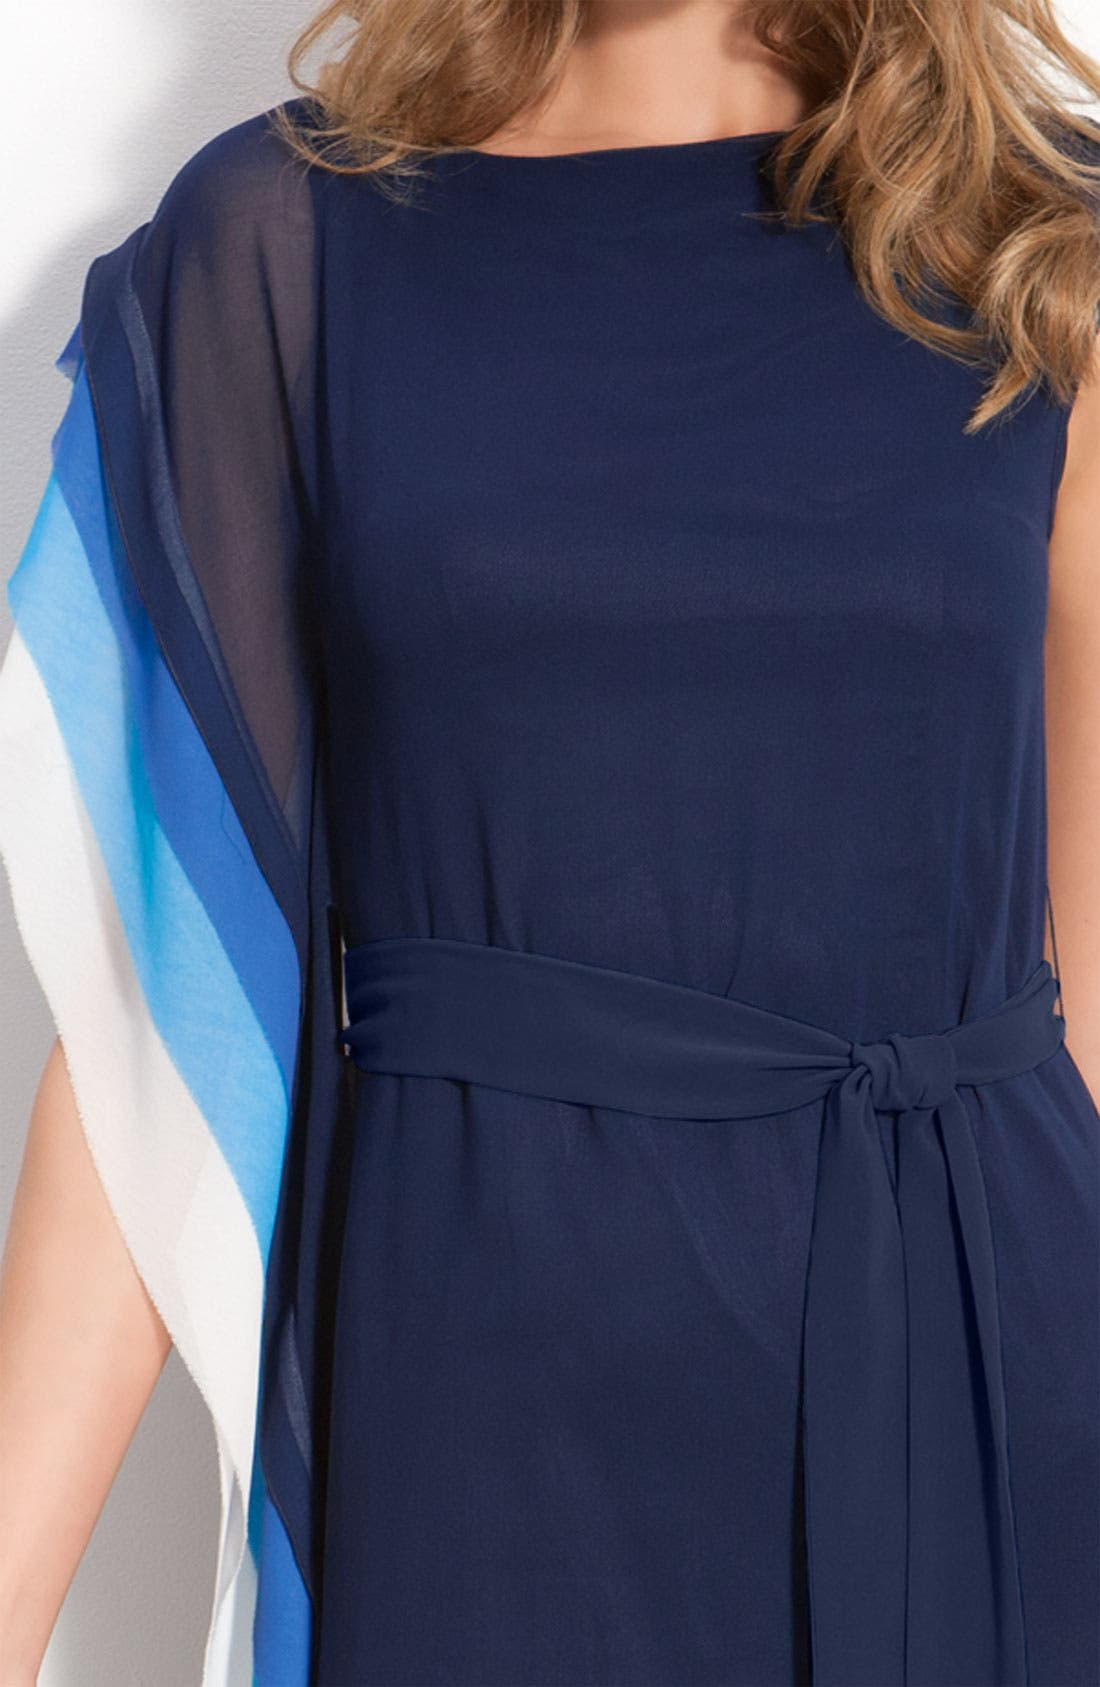 VINCE CAMUTO,                             Asymmetric Layered Tier Dress with Sash Tie,                             Alternate thumbnail 2, color,                             405